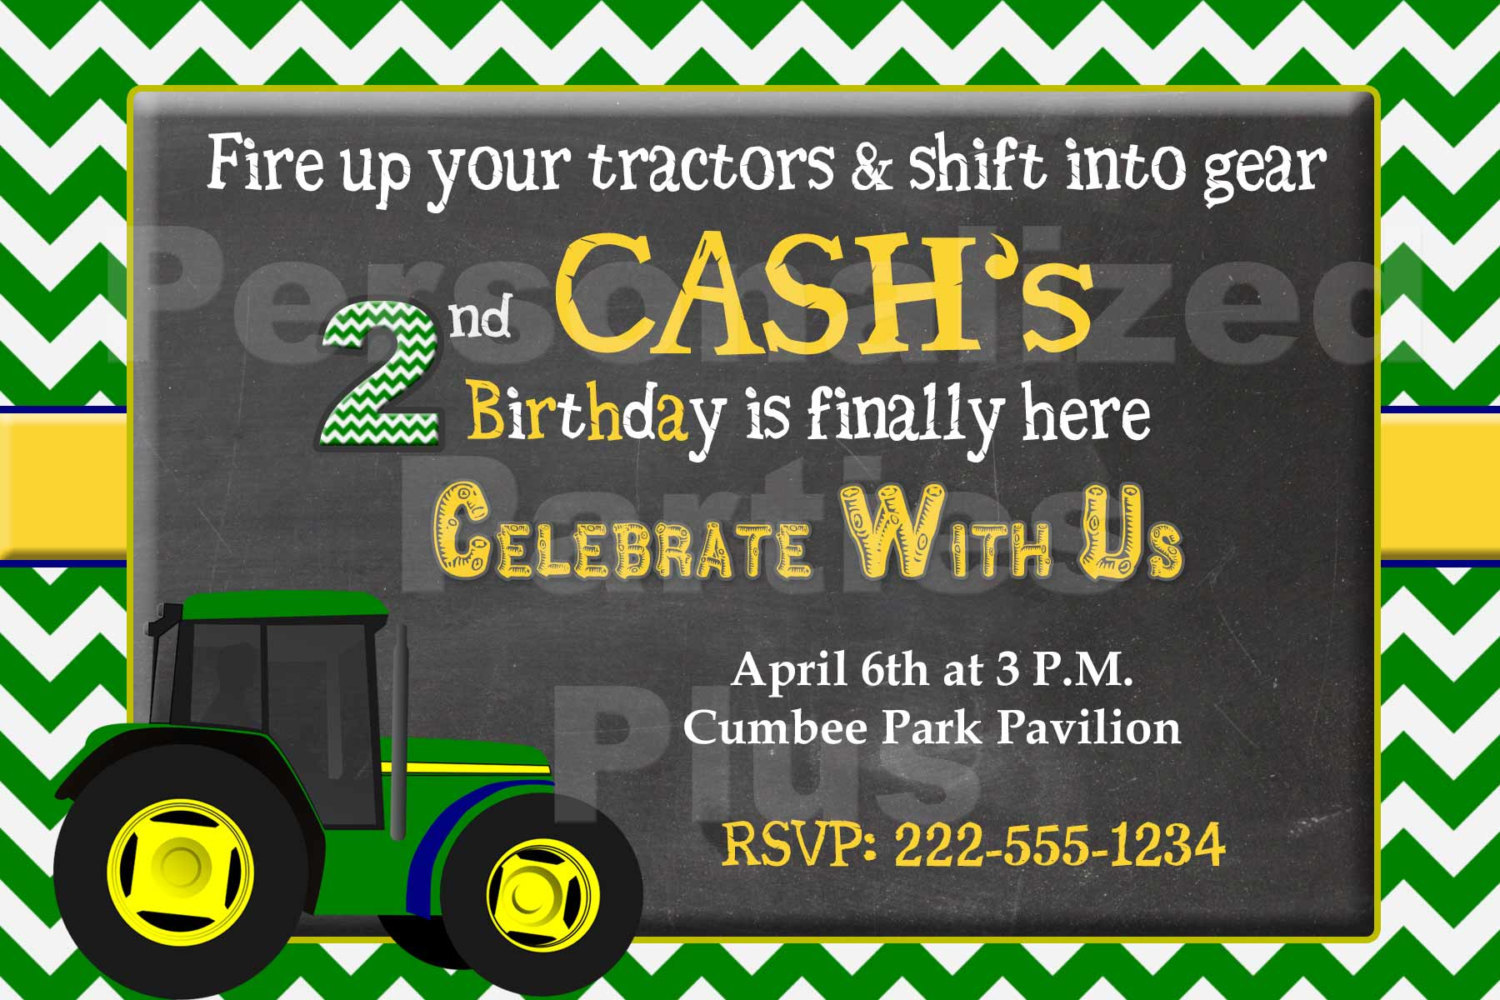 Tractor birthday invitation that is personalized: Downloadable image